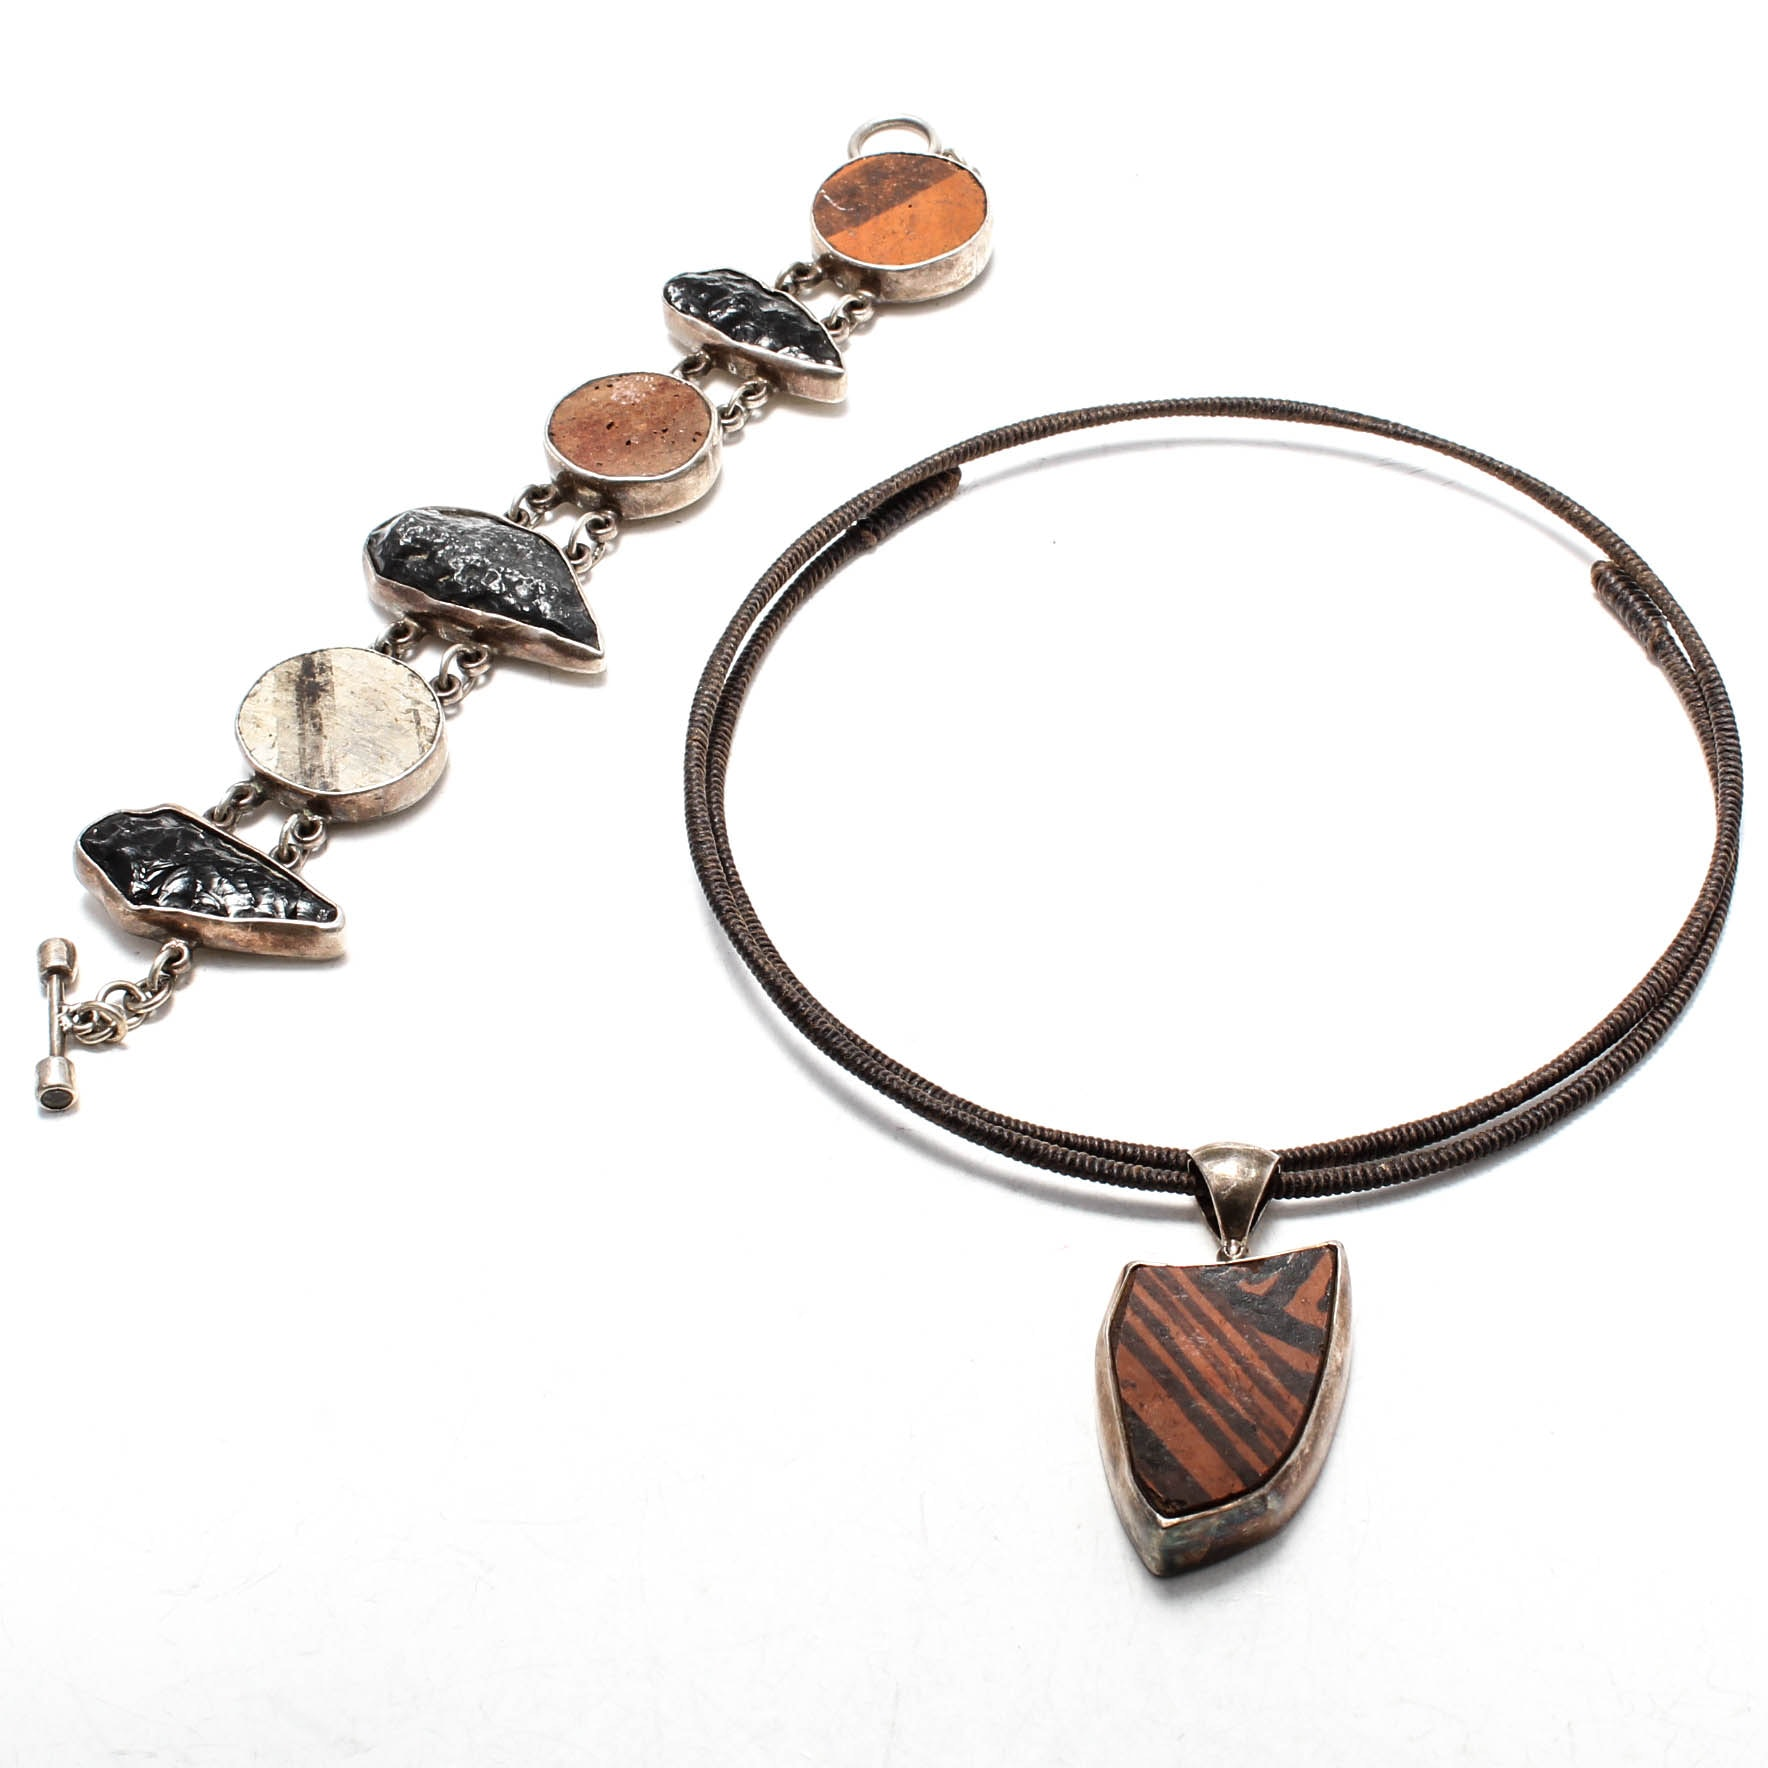 Sterling Silver Jewelry with Pottery Shard Accents